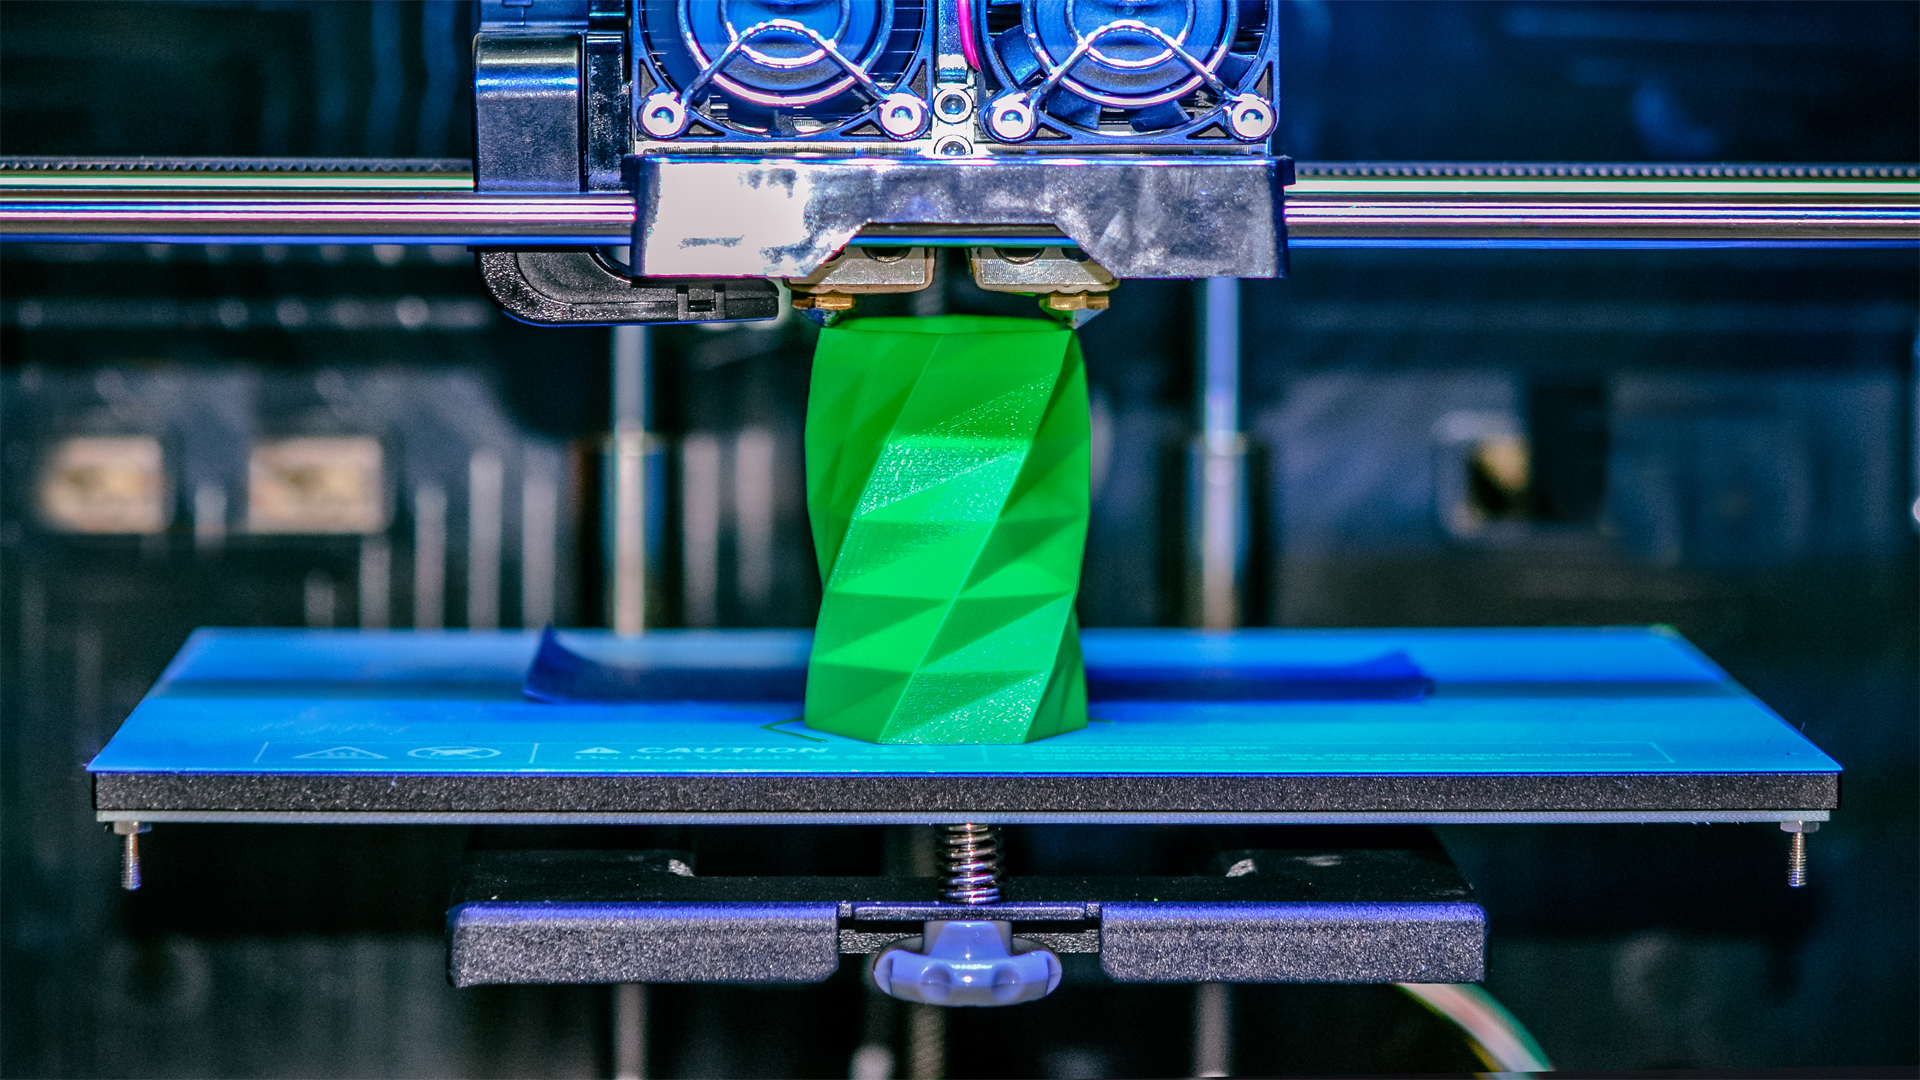 How a Pandemic and a 3D Printer Transformed My Business